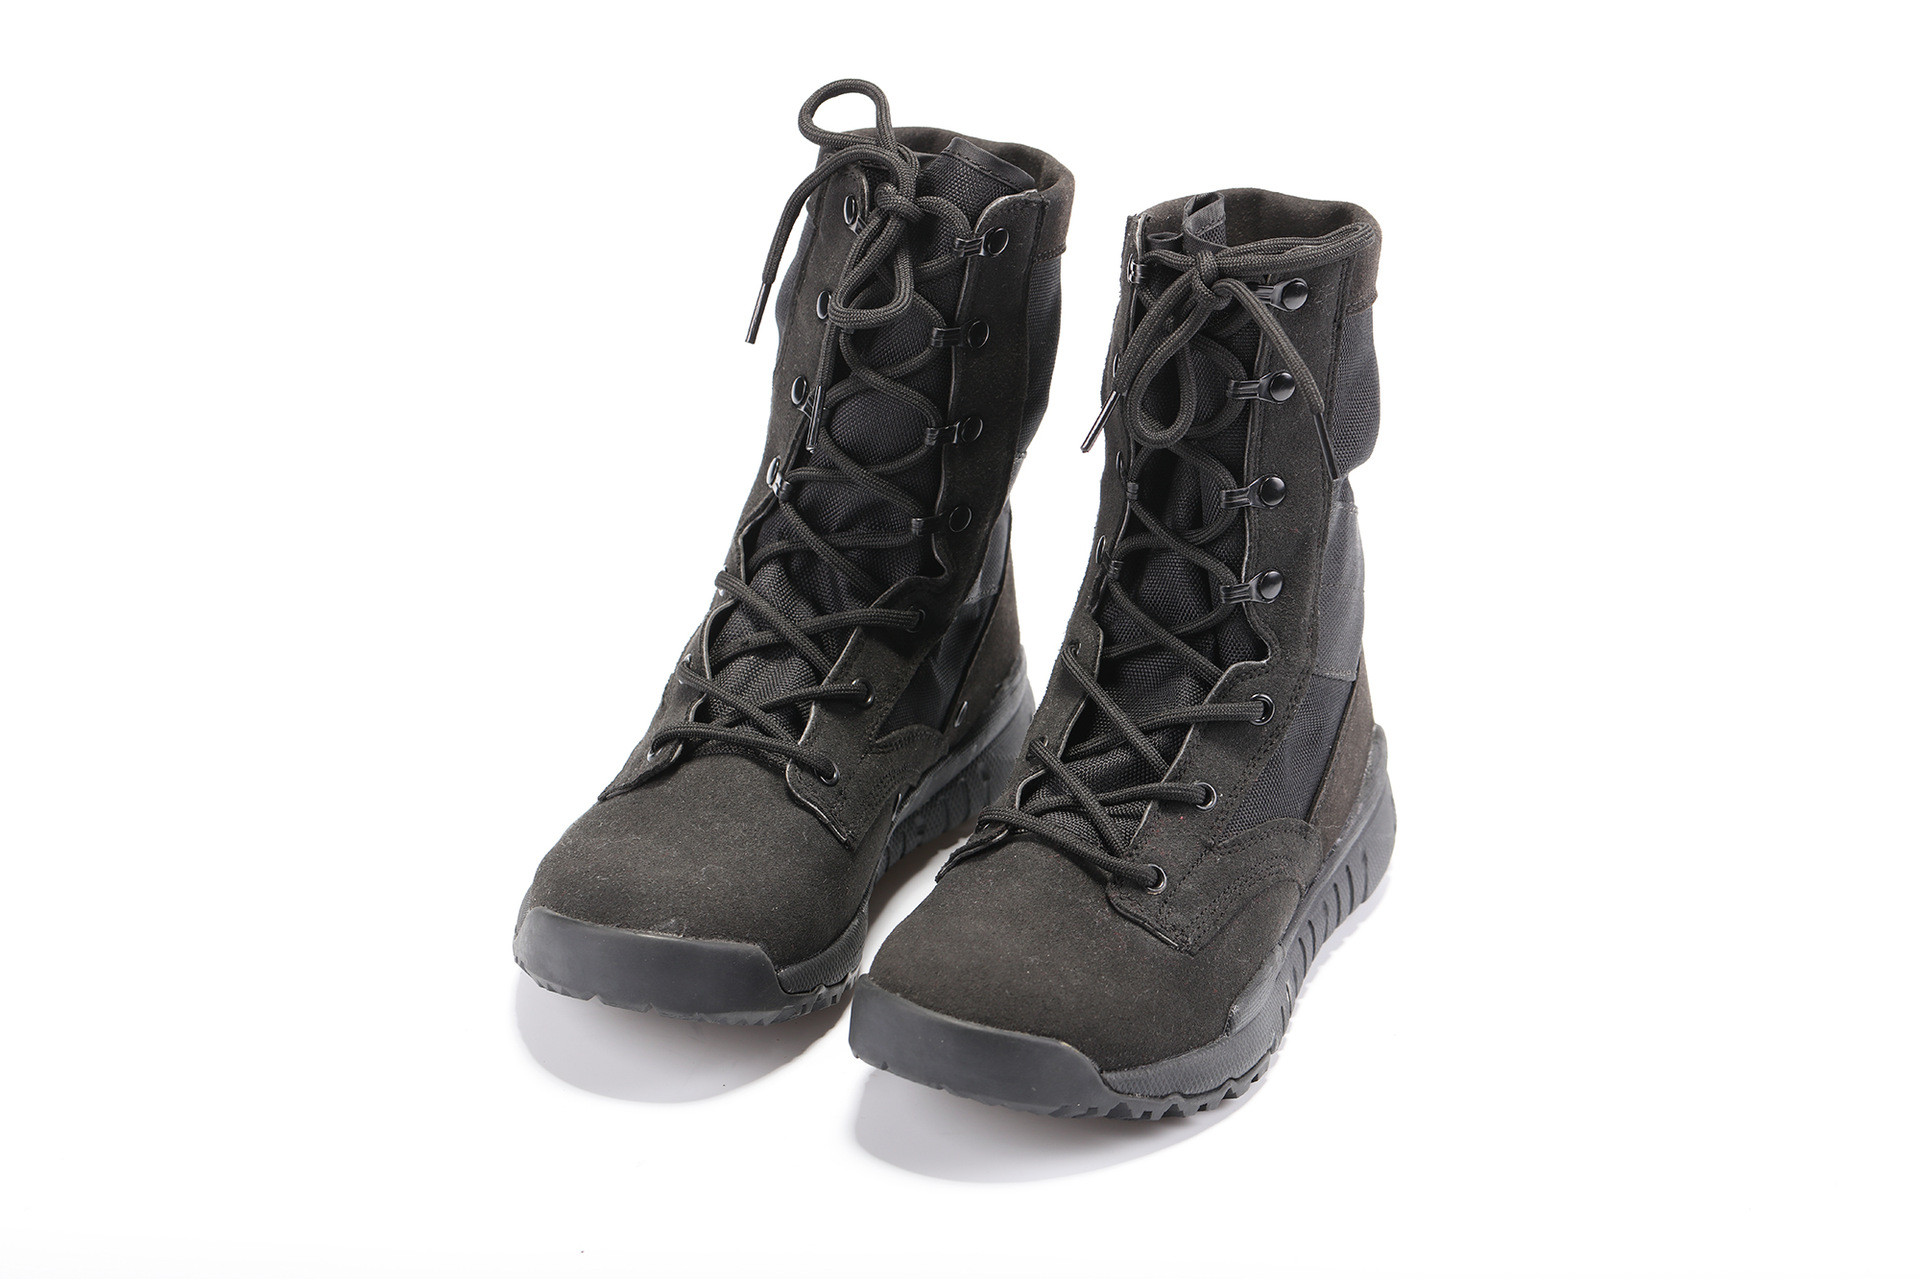 Ultra-Light Combat Boots Black Velvet Spring And Autumn Combat Boots SFB Canvas Breathable Boots CS Hight-top Combat Boots Outdo